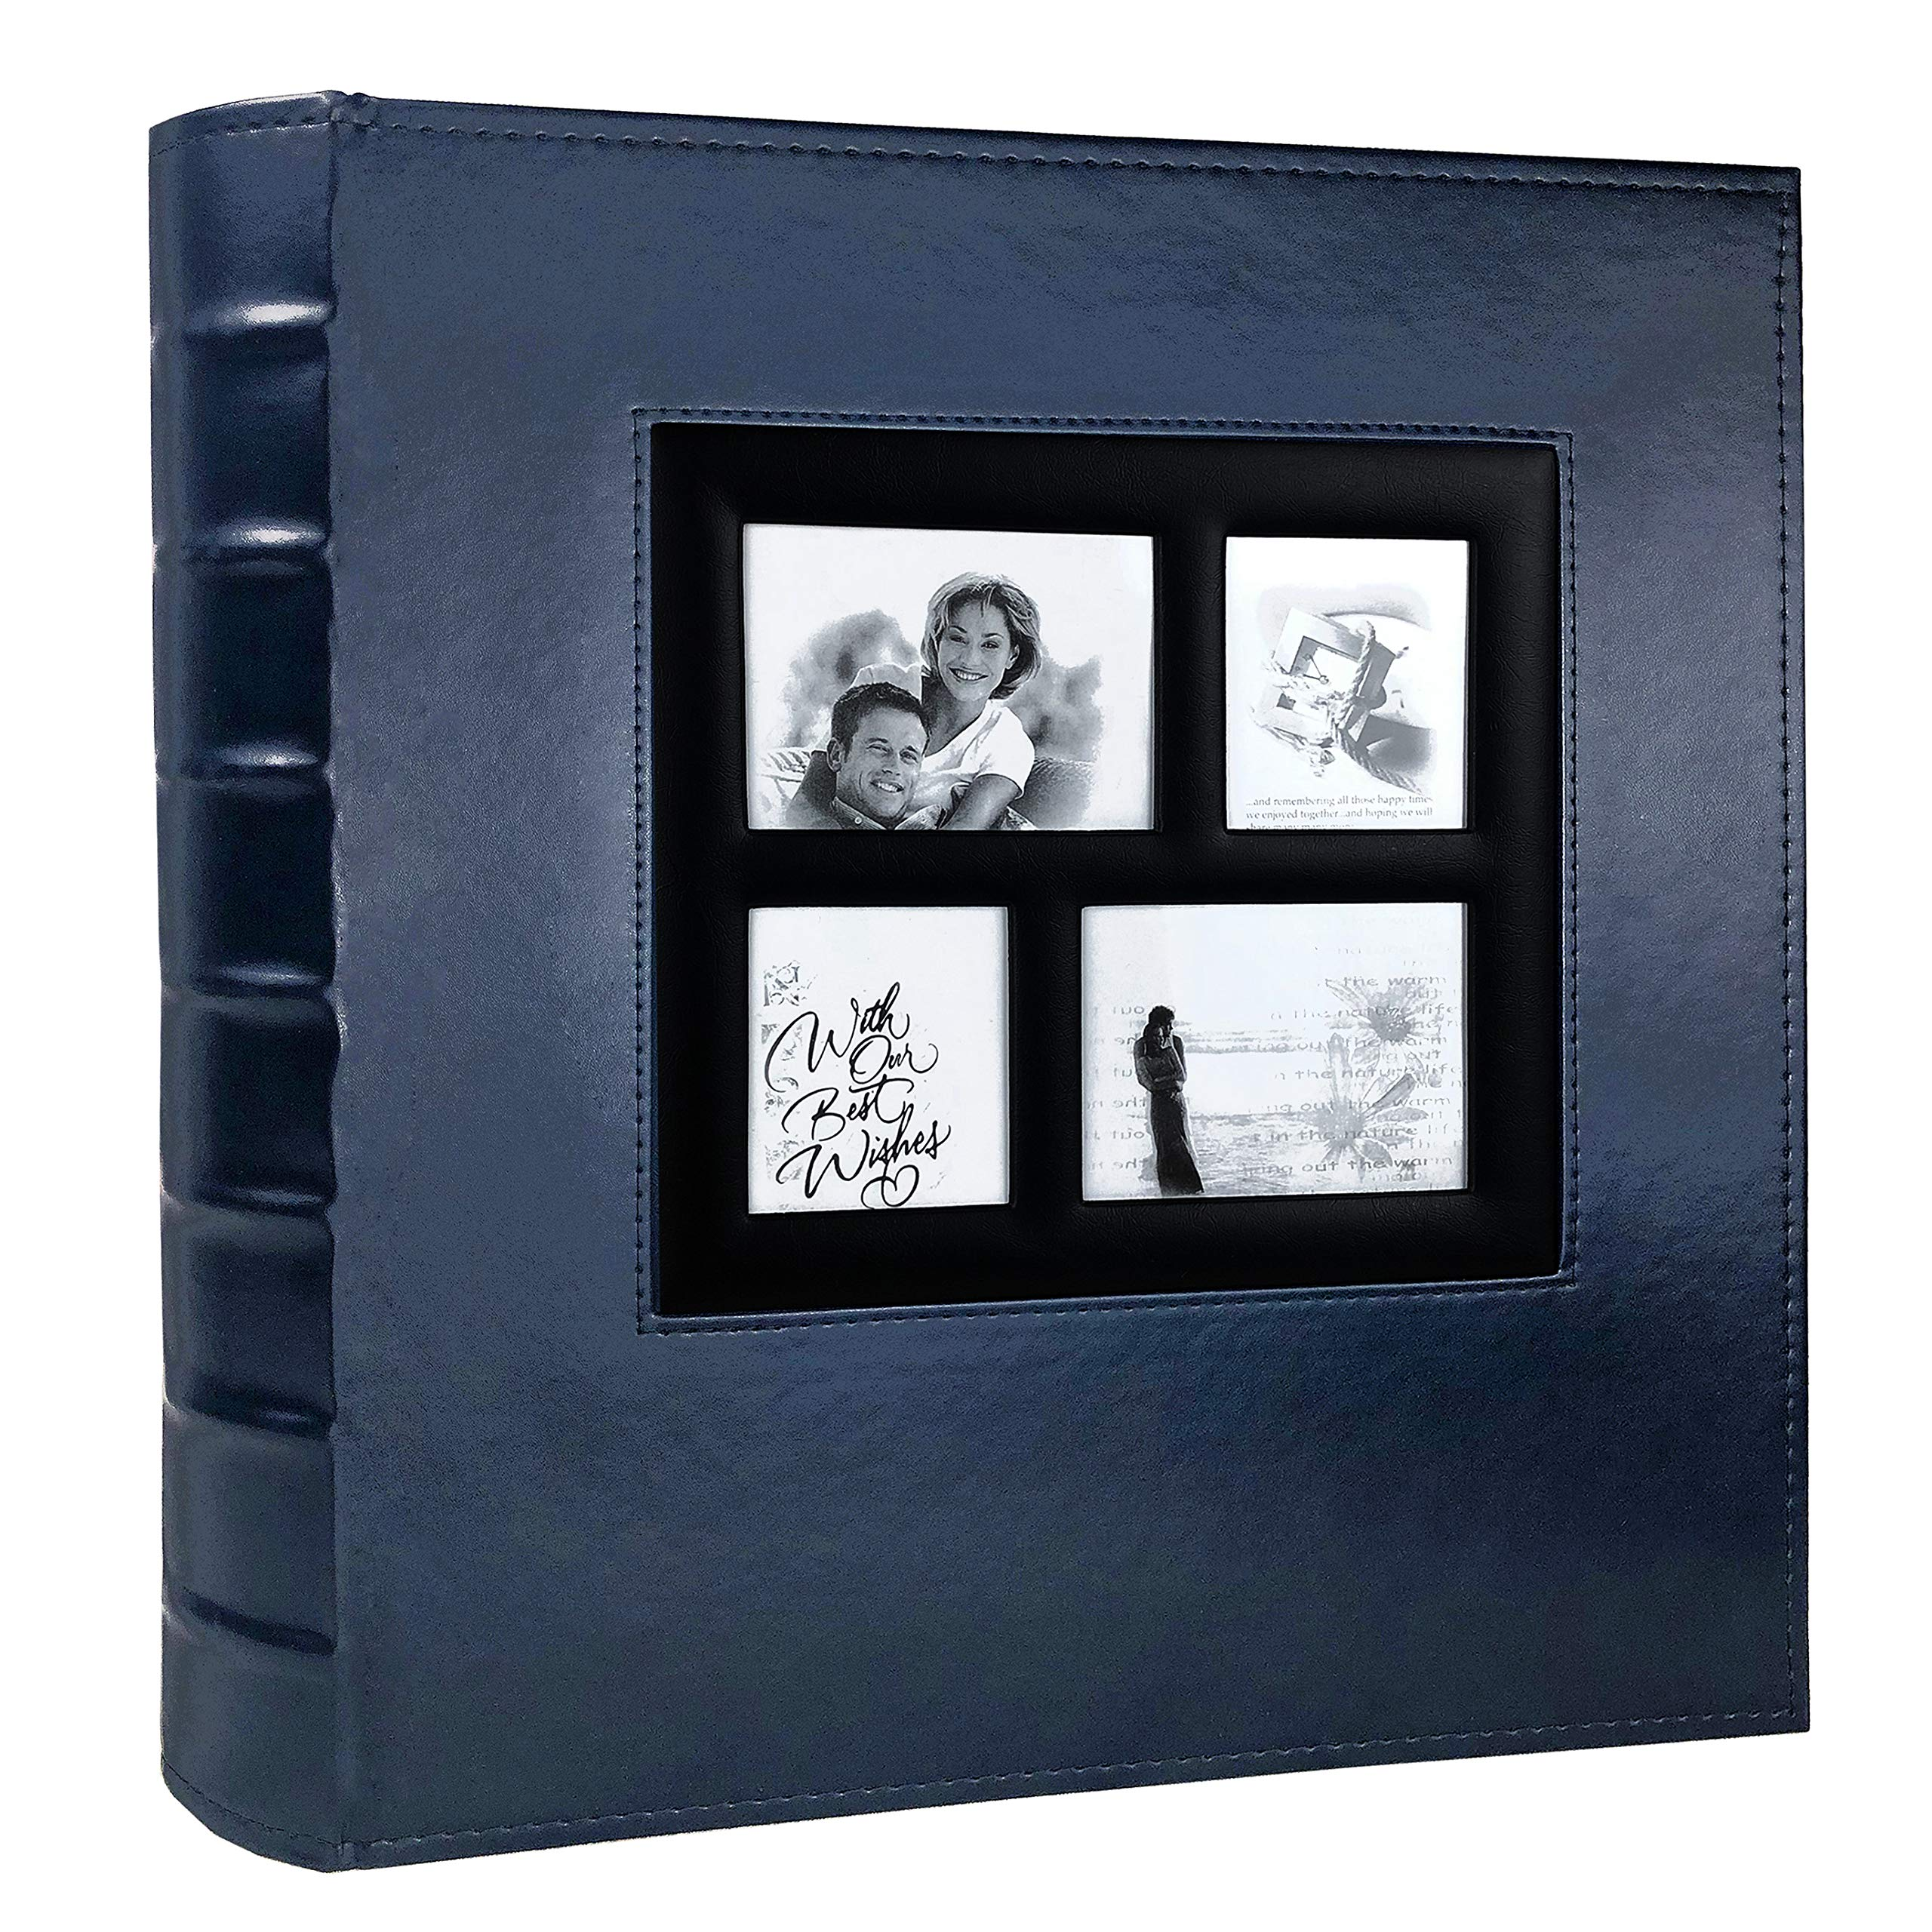 RECUTMS Photo Album 4x6 Holds 500 Photos Black Pages Large Capacity Leather Cover Wedding Family Baby Photo Albums Book Horizontal and Vertical Photos (Blue)